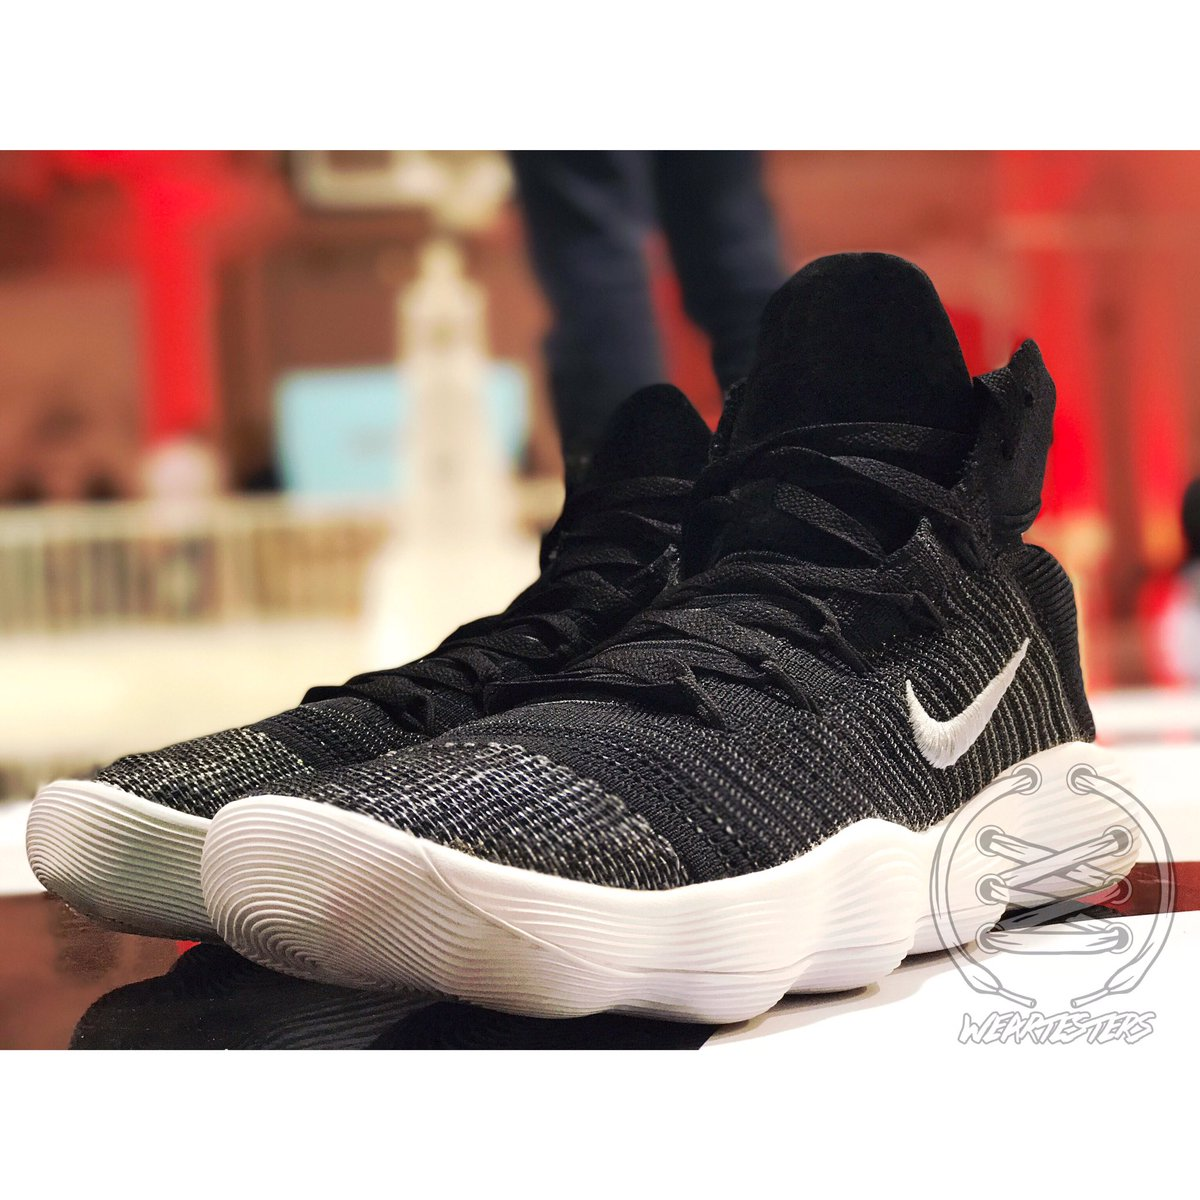 2fd03db06674 get weartesters on twitter close up look at the nike react hyperdunk 2017  flyknit terminal 23